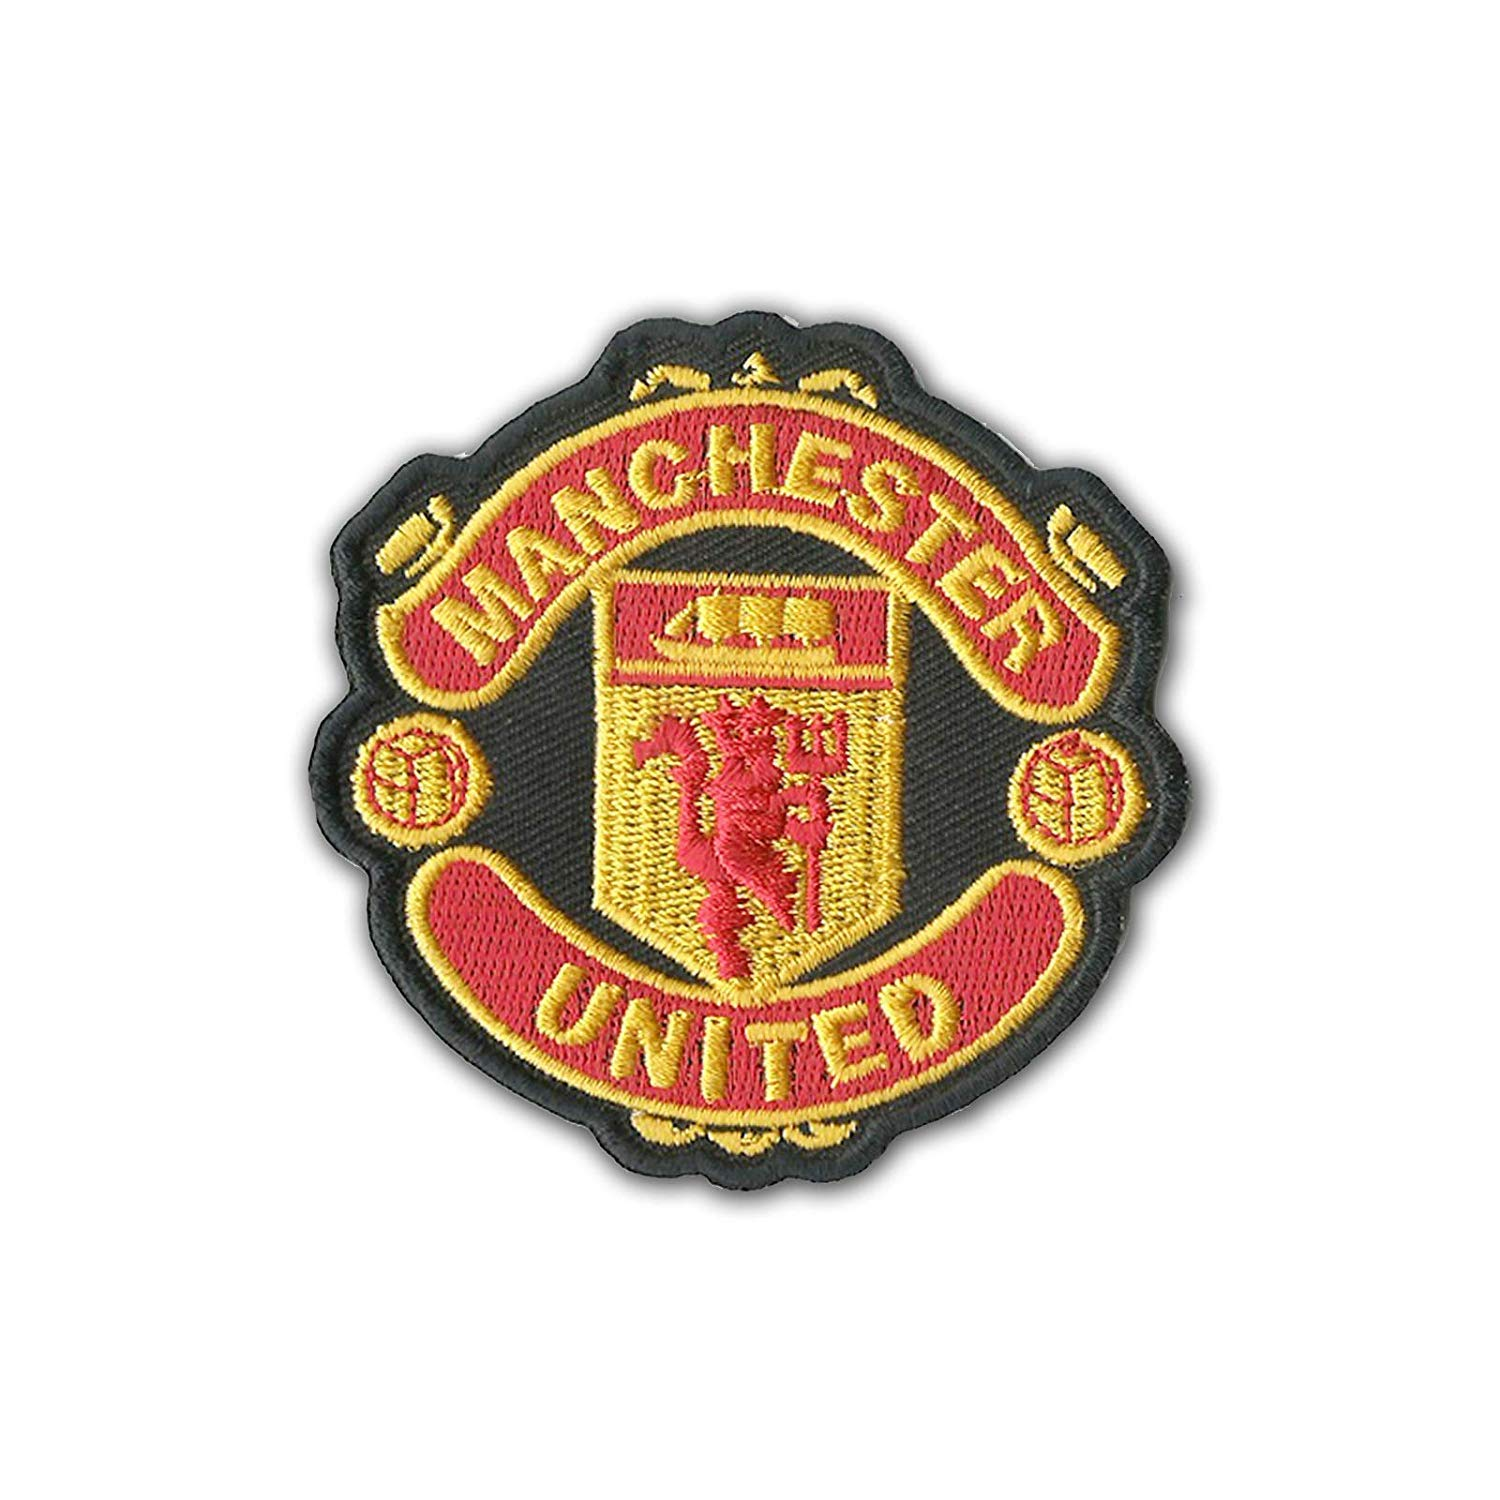 Manchester United MUFC Man U Embroidered Sew On Iron Embroidered Patch 3'' Logo Sew Ironed On Badge Embroidery Applique Patch by KHC